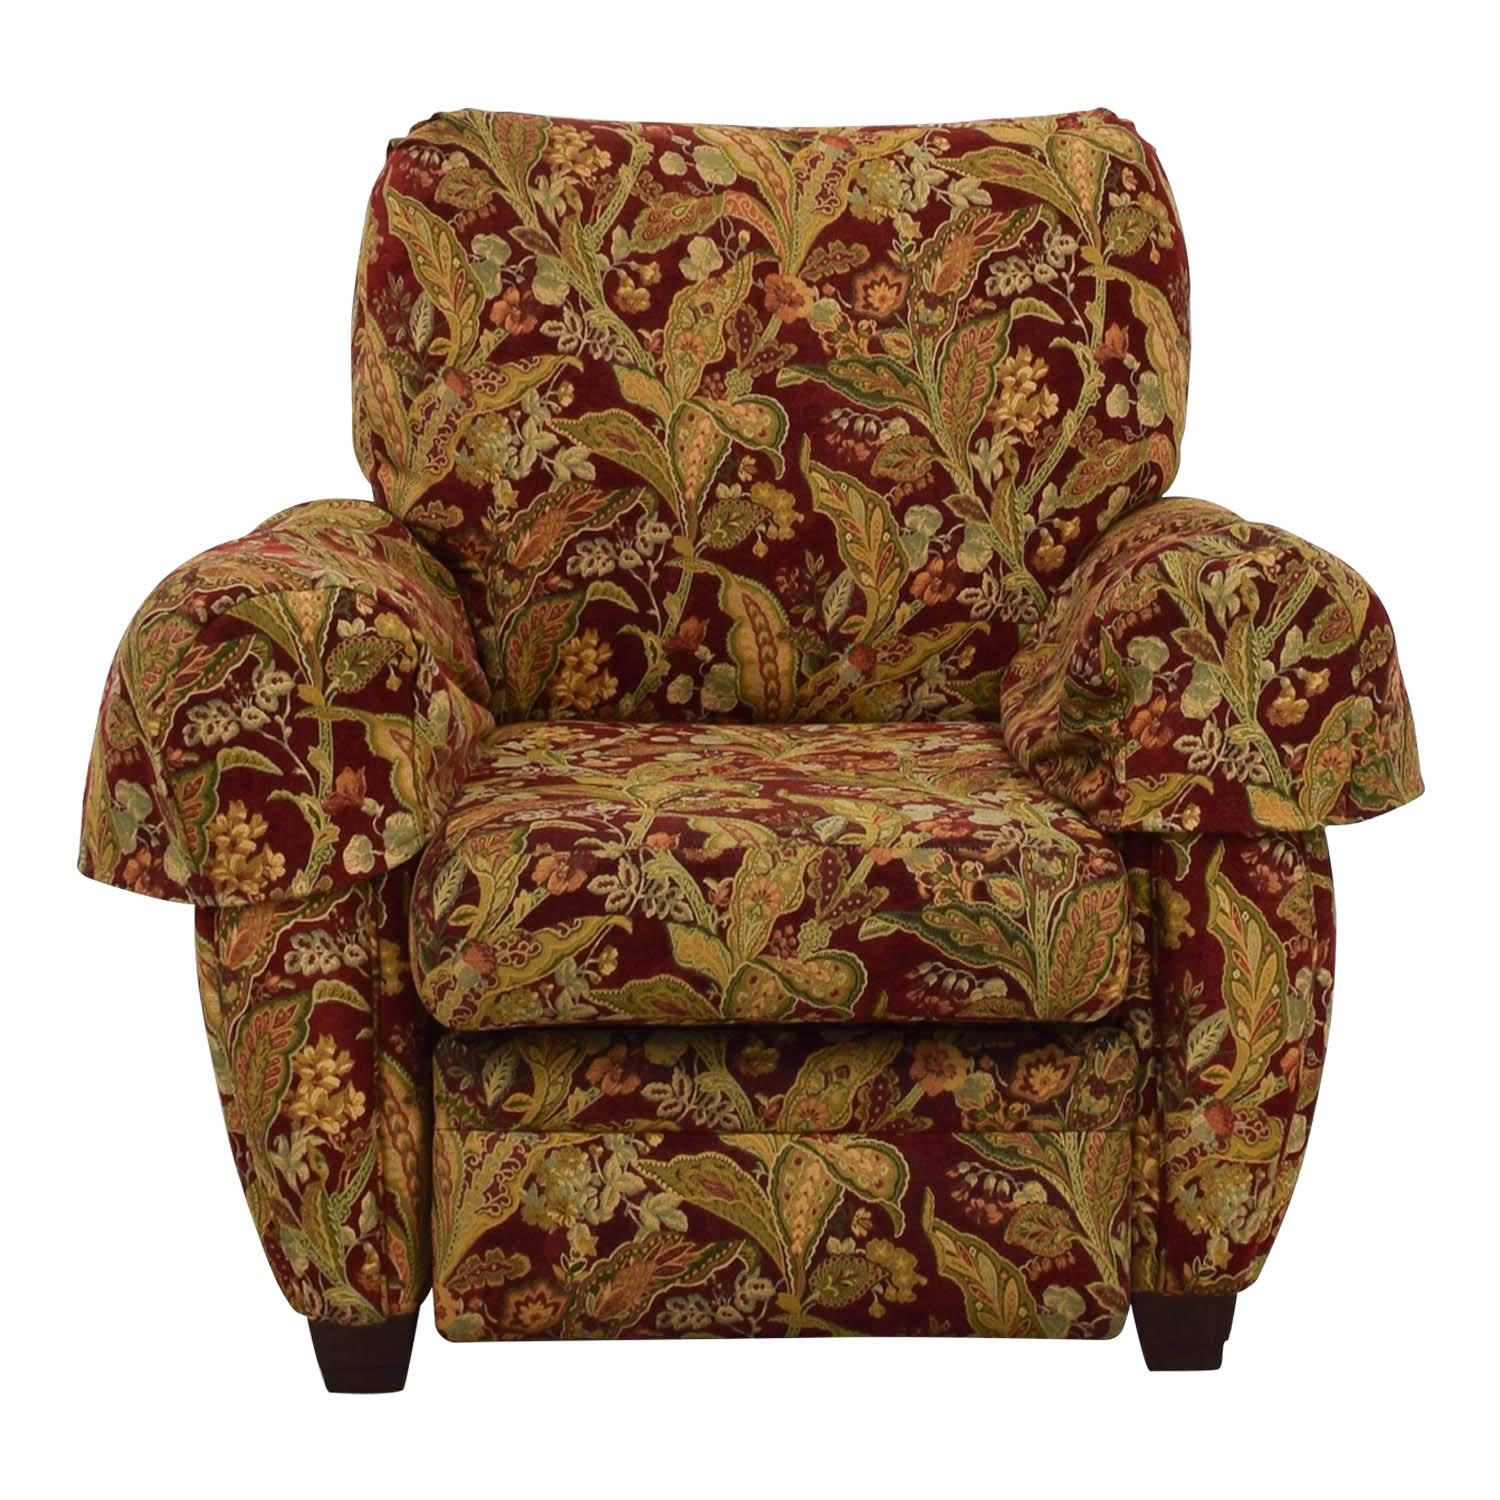 84% OFF - La-Z-Boy Lazy Boy Burgundy Floral Recliner / Chairs